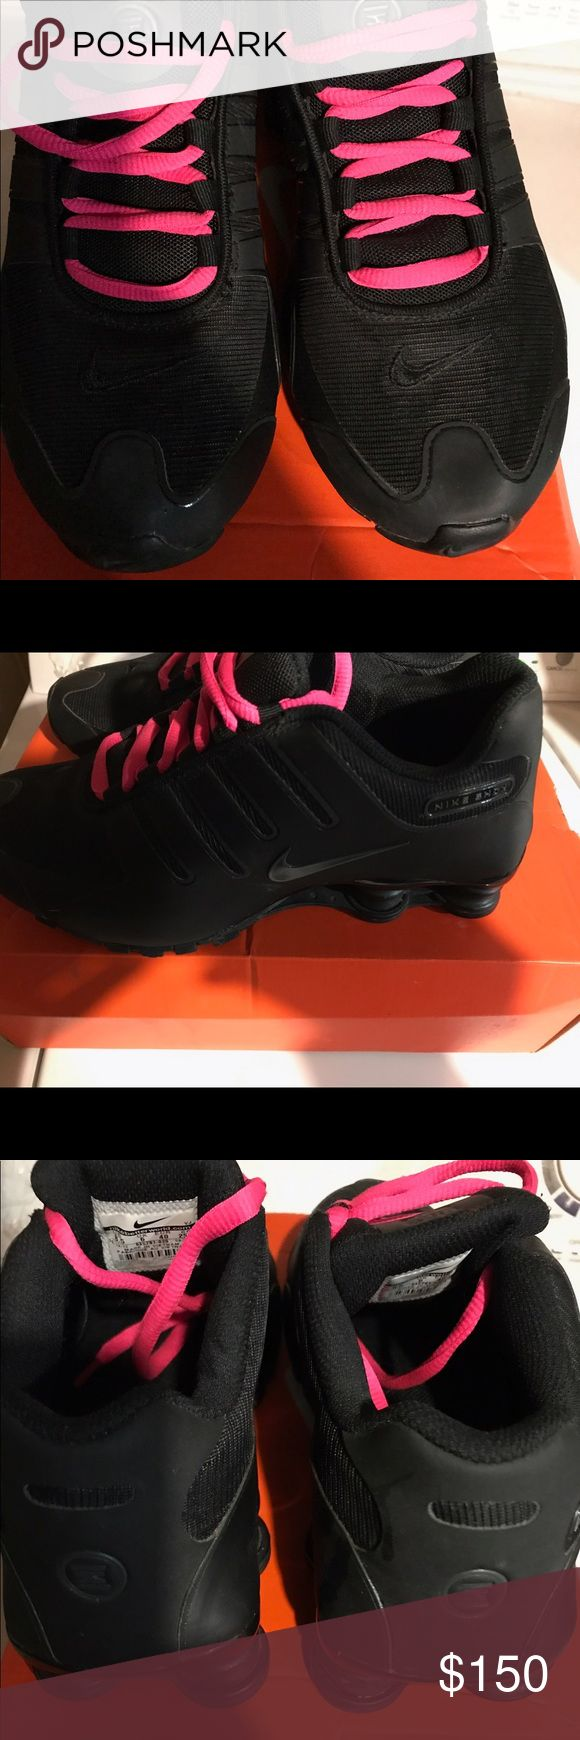 Nike shocks women's like new Glowing in the dark,  very rare, hot pink laces and black woren 3 times in excellent condition comes with box 📦 Nike Shoes Athletic Shoes